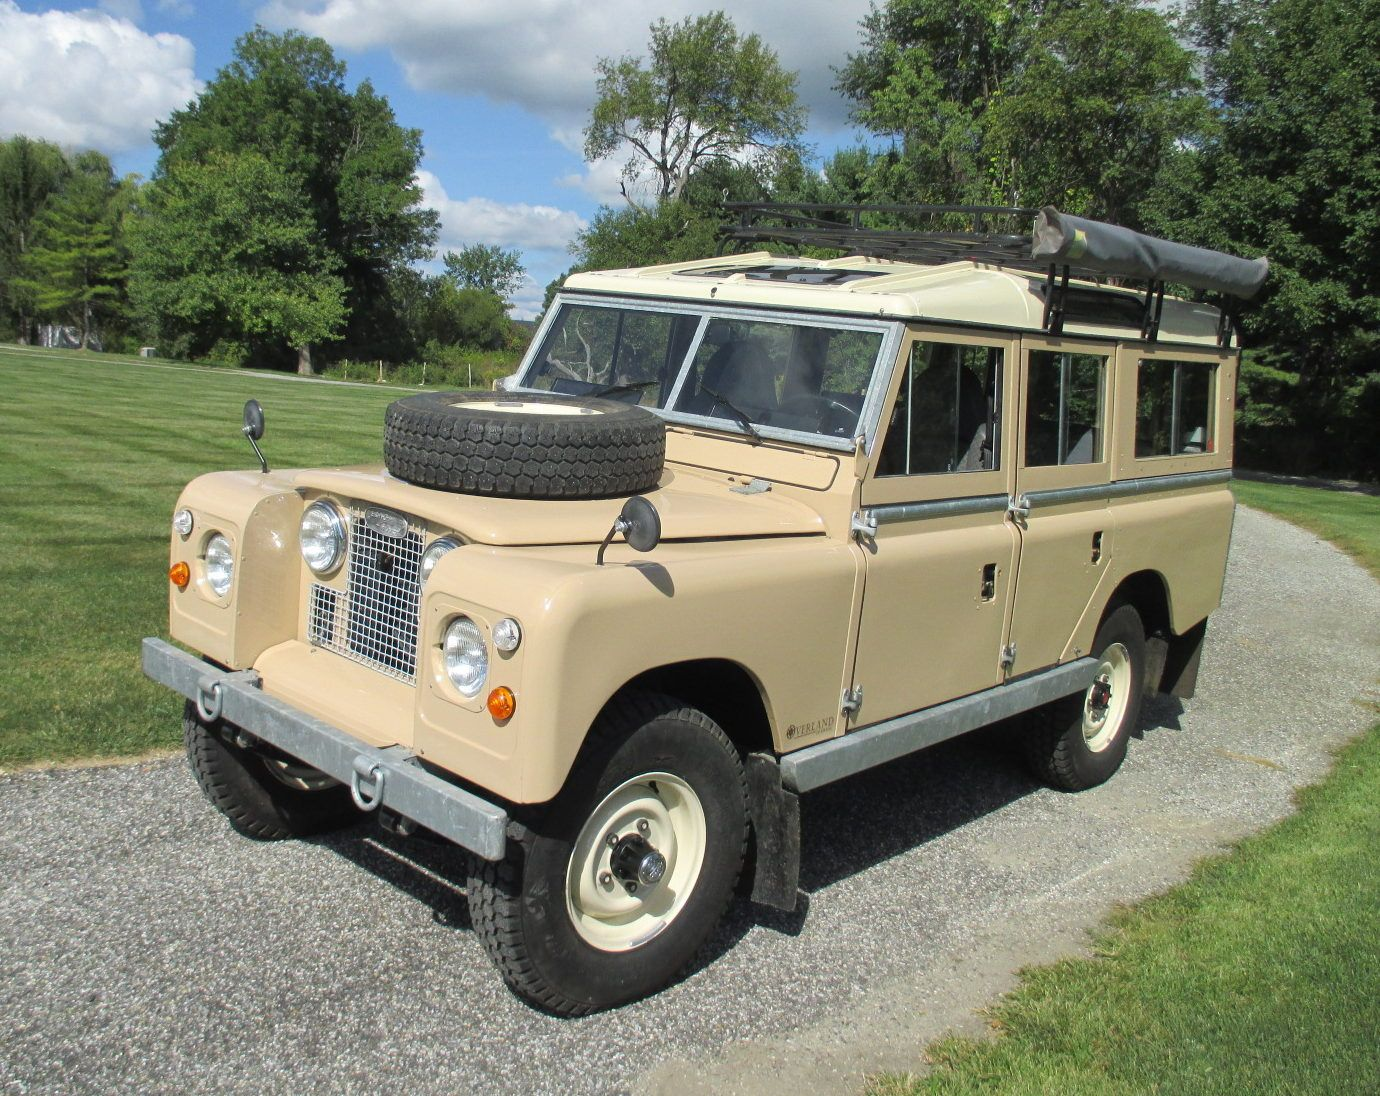 Restored 1967 Land Rover 109 NADA 4-Speed | Land Rovers | Pinterest ...